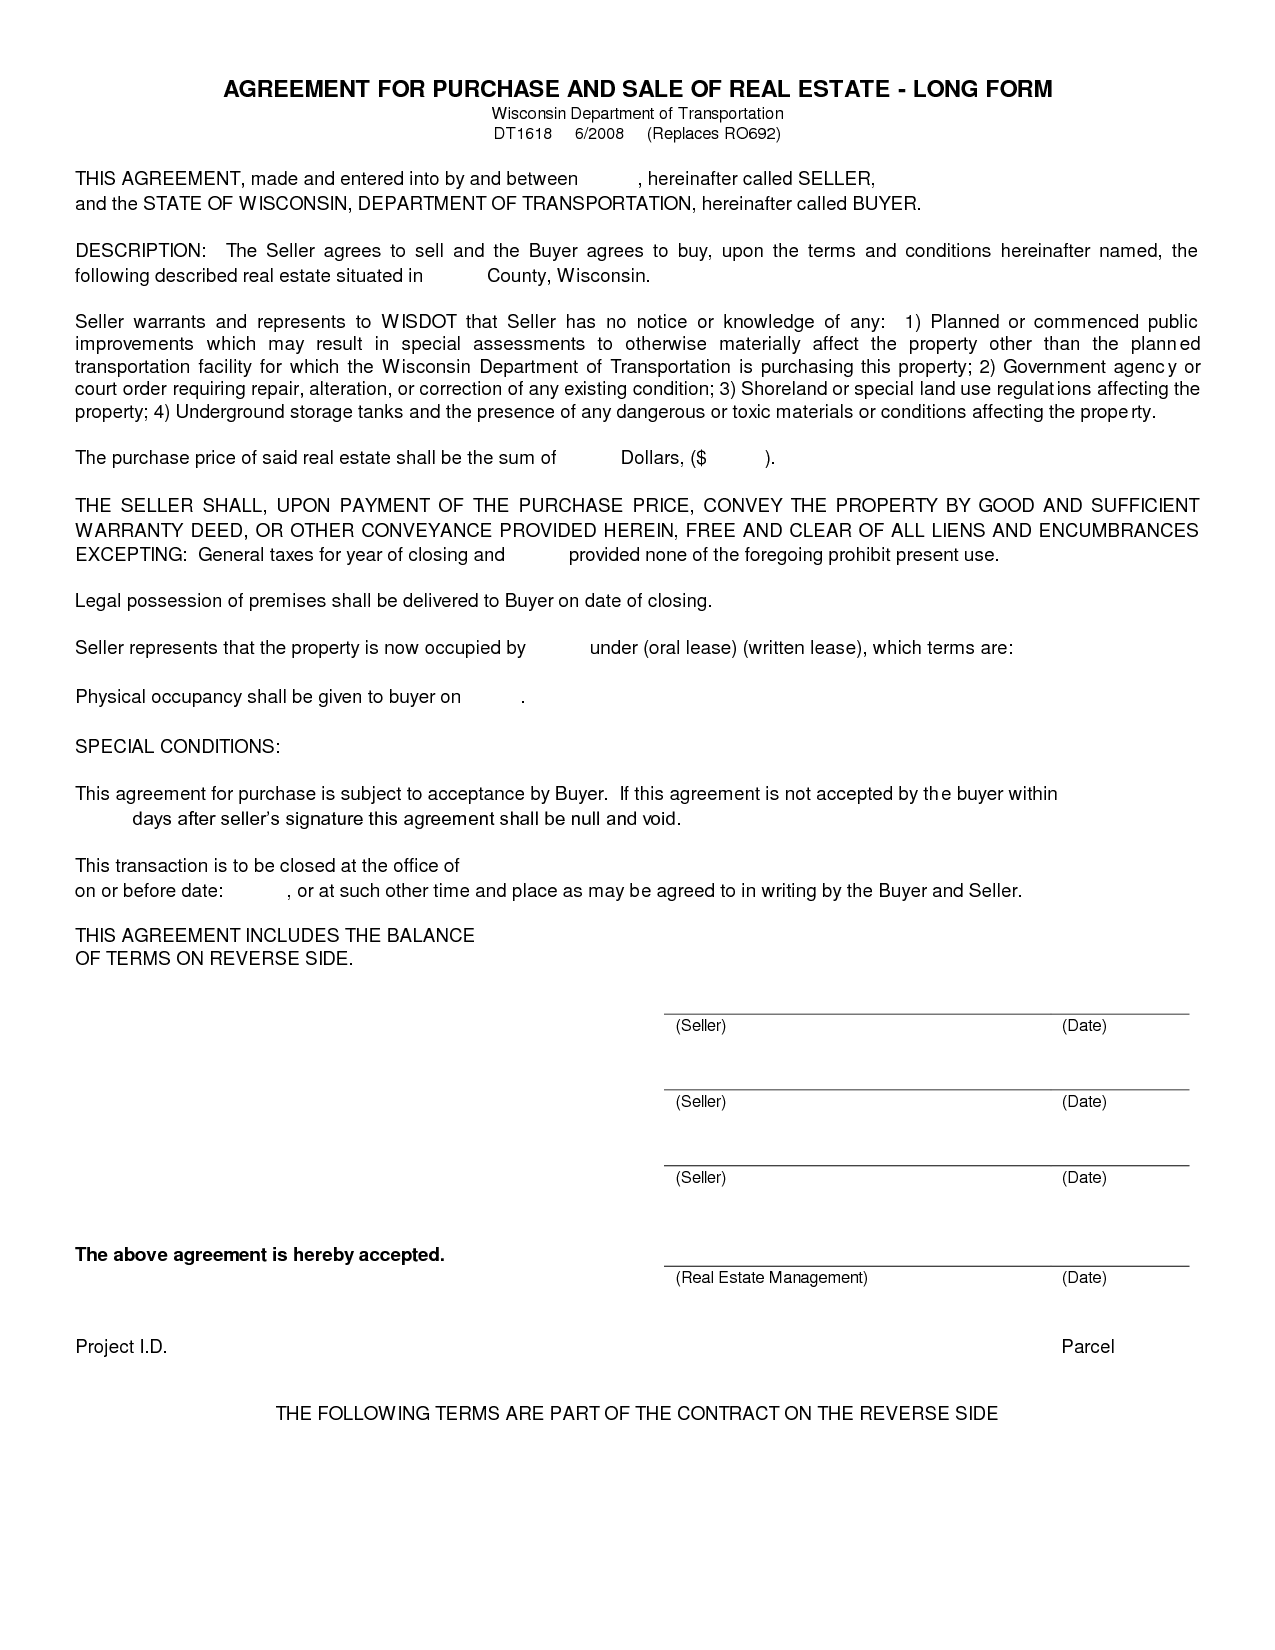 Free Blank Purchase Agreement Form images agreement to purchase – Agreement to Purchase Real Estate Form Free